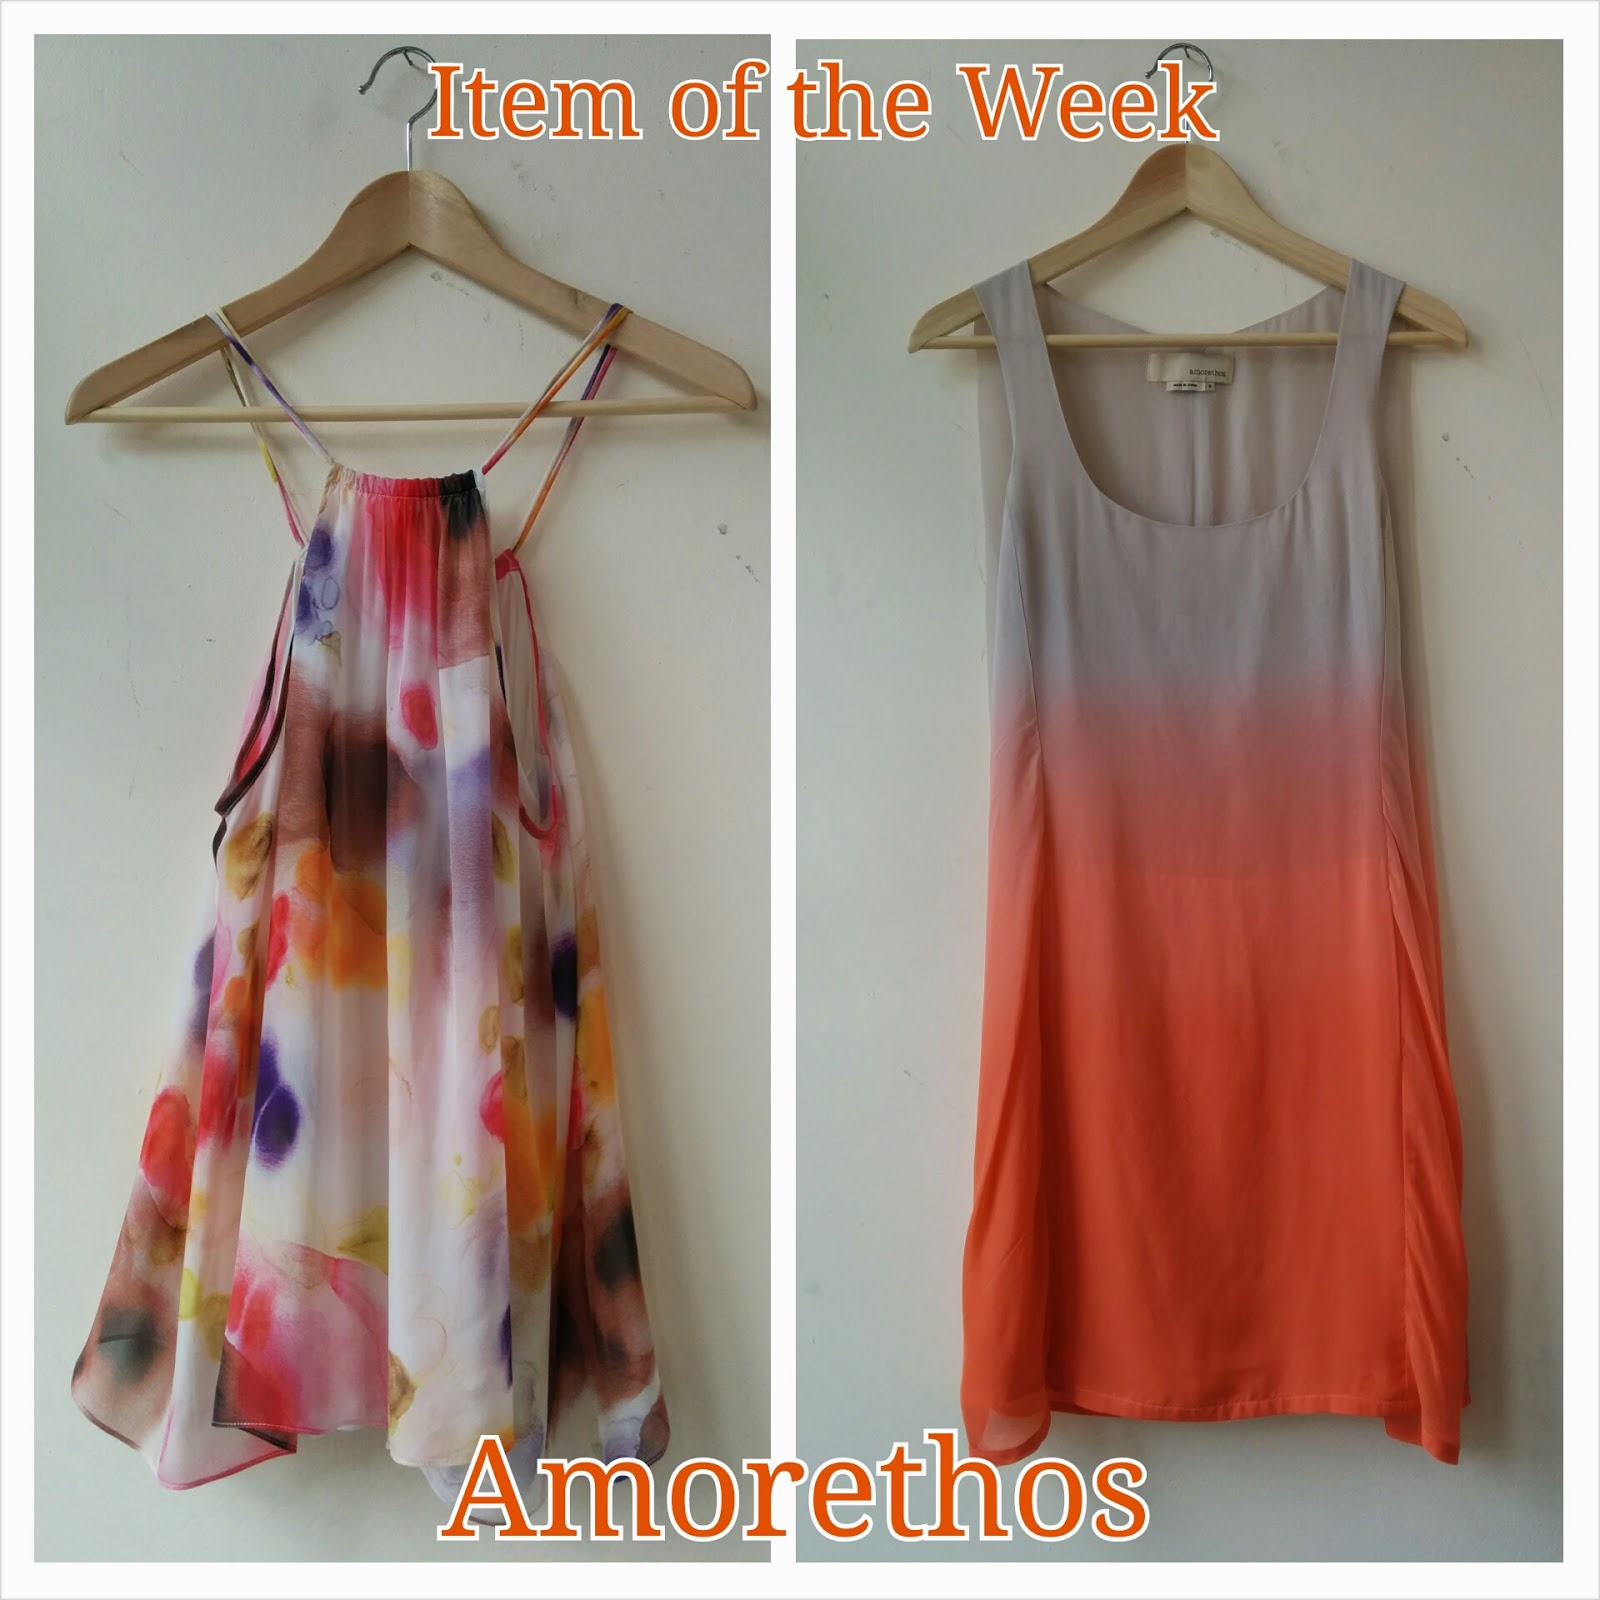 Amorethos clothing at The Weekender